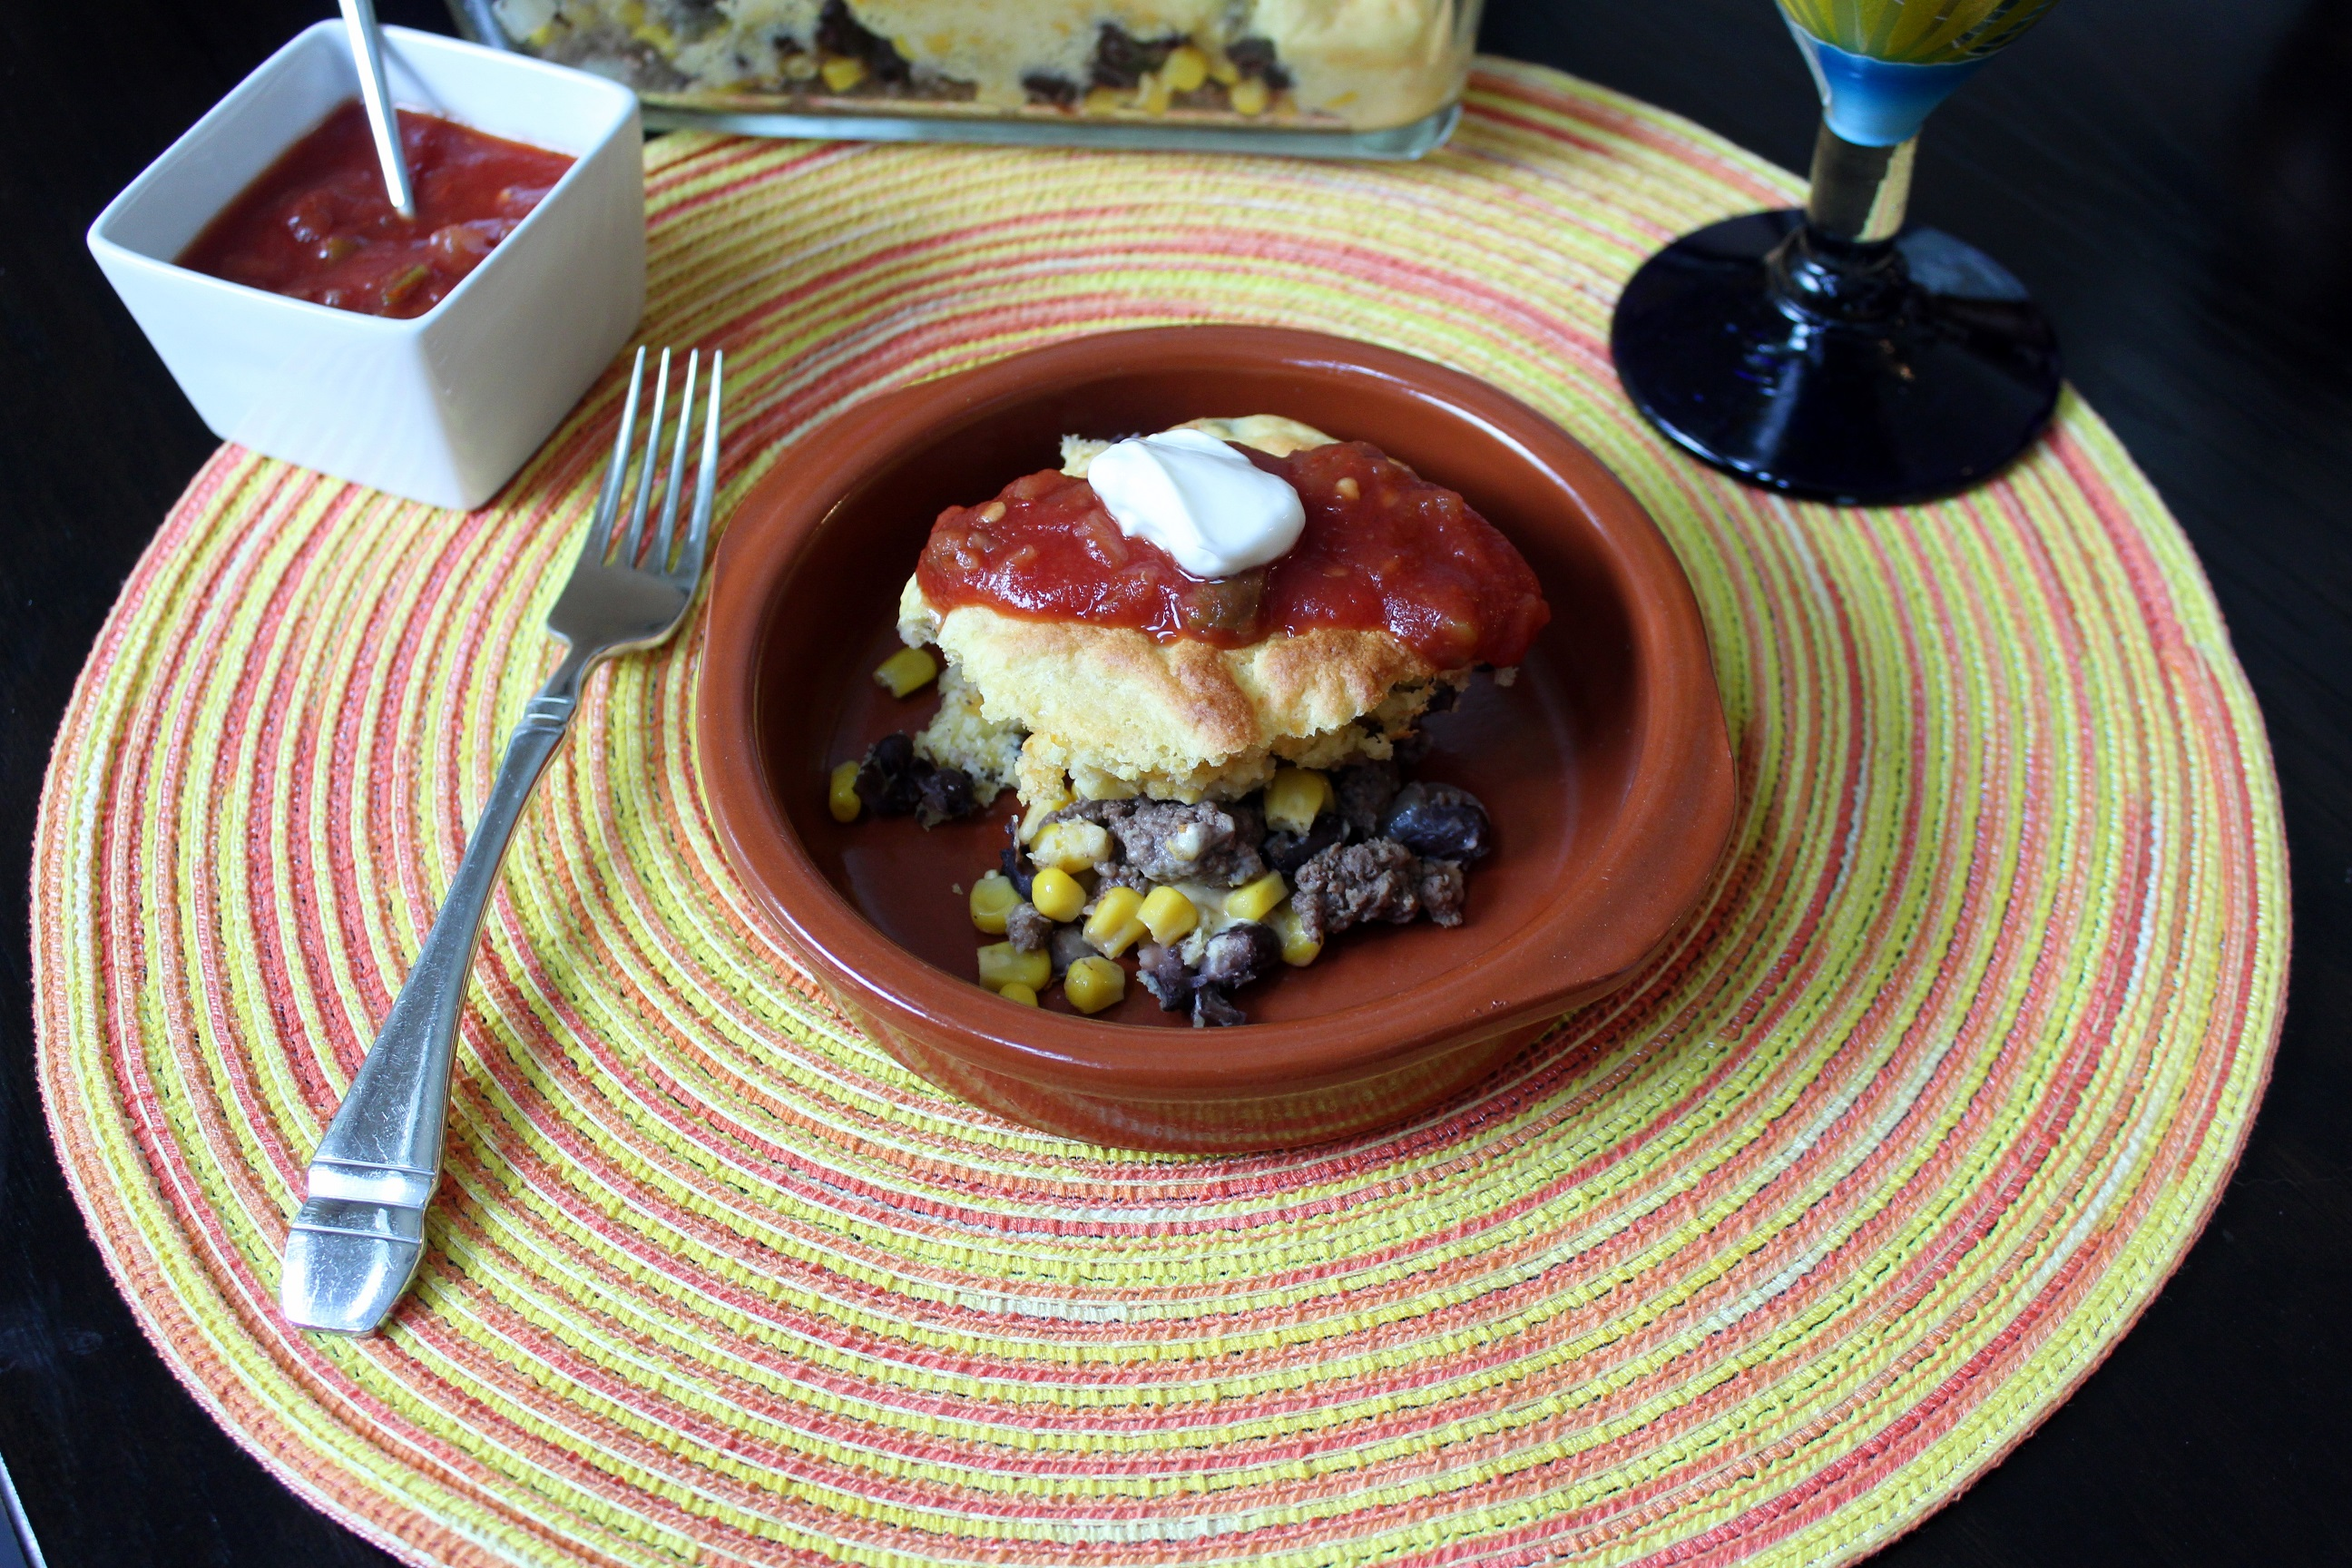 Spicy Black Bean Taco Bake